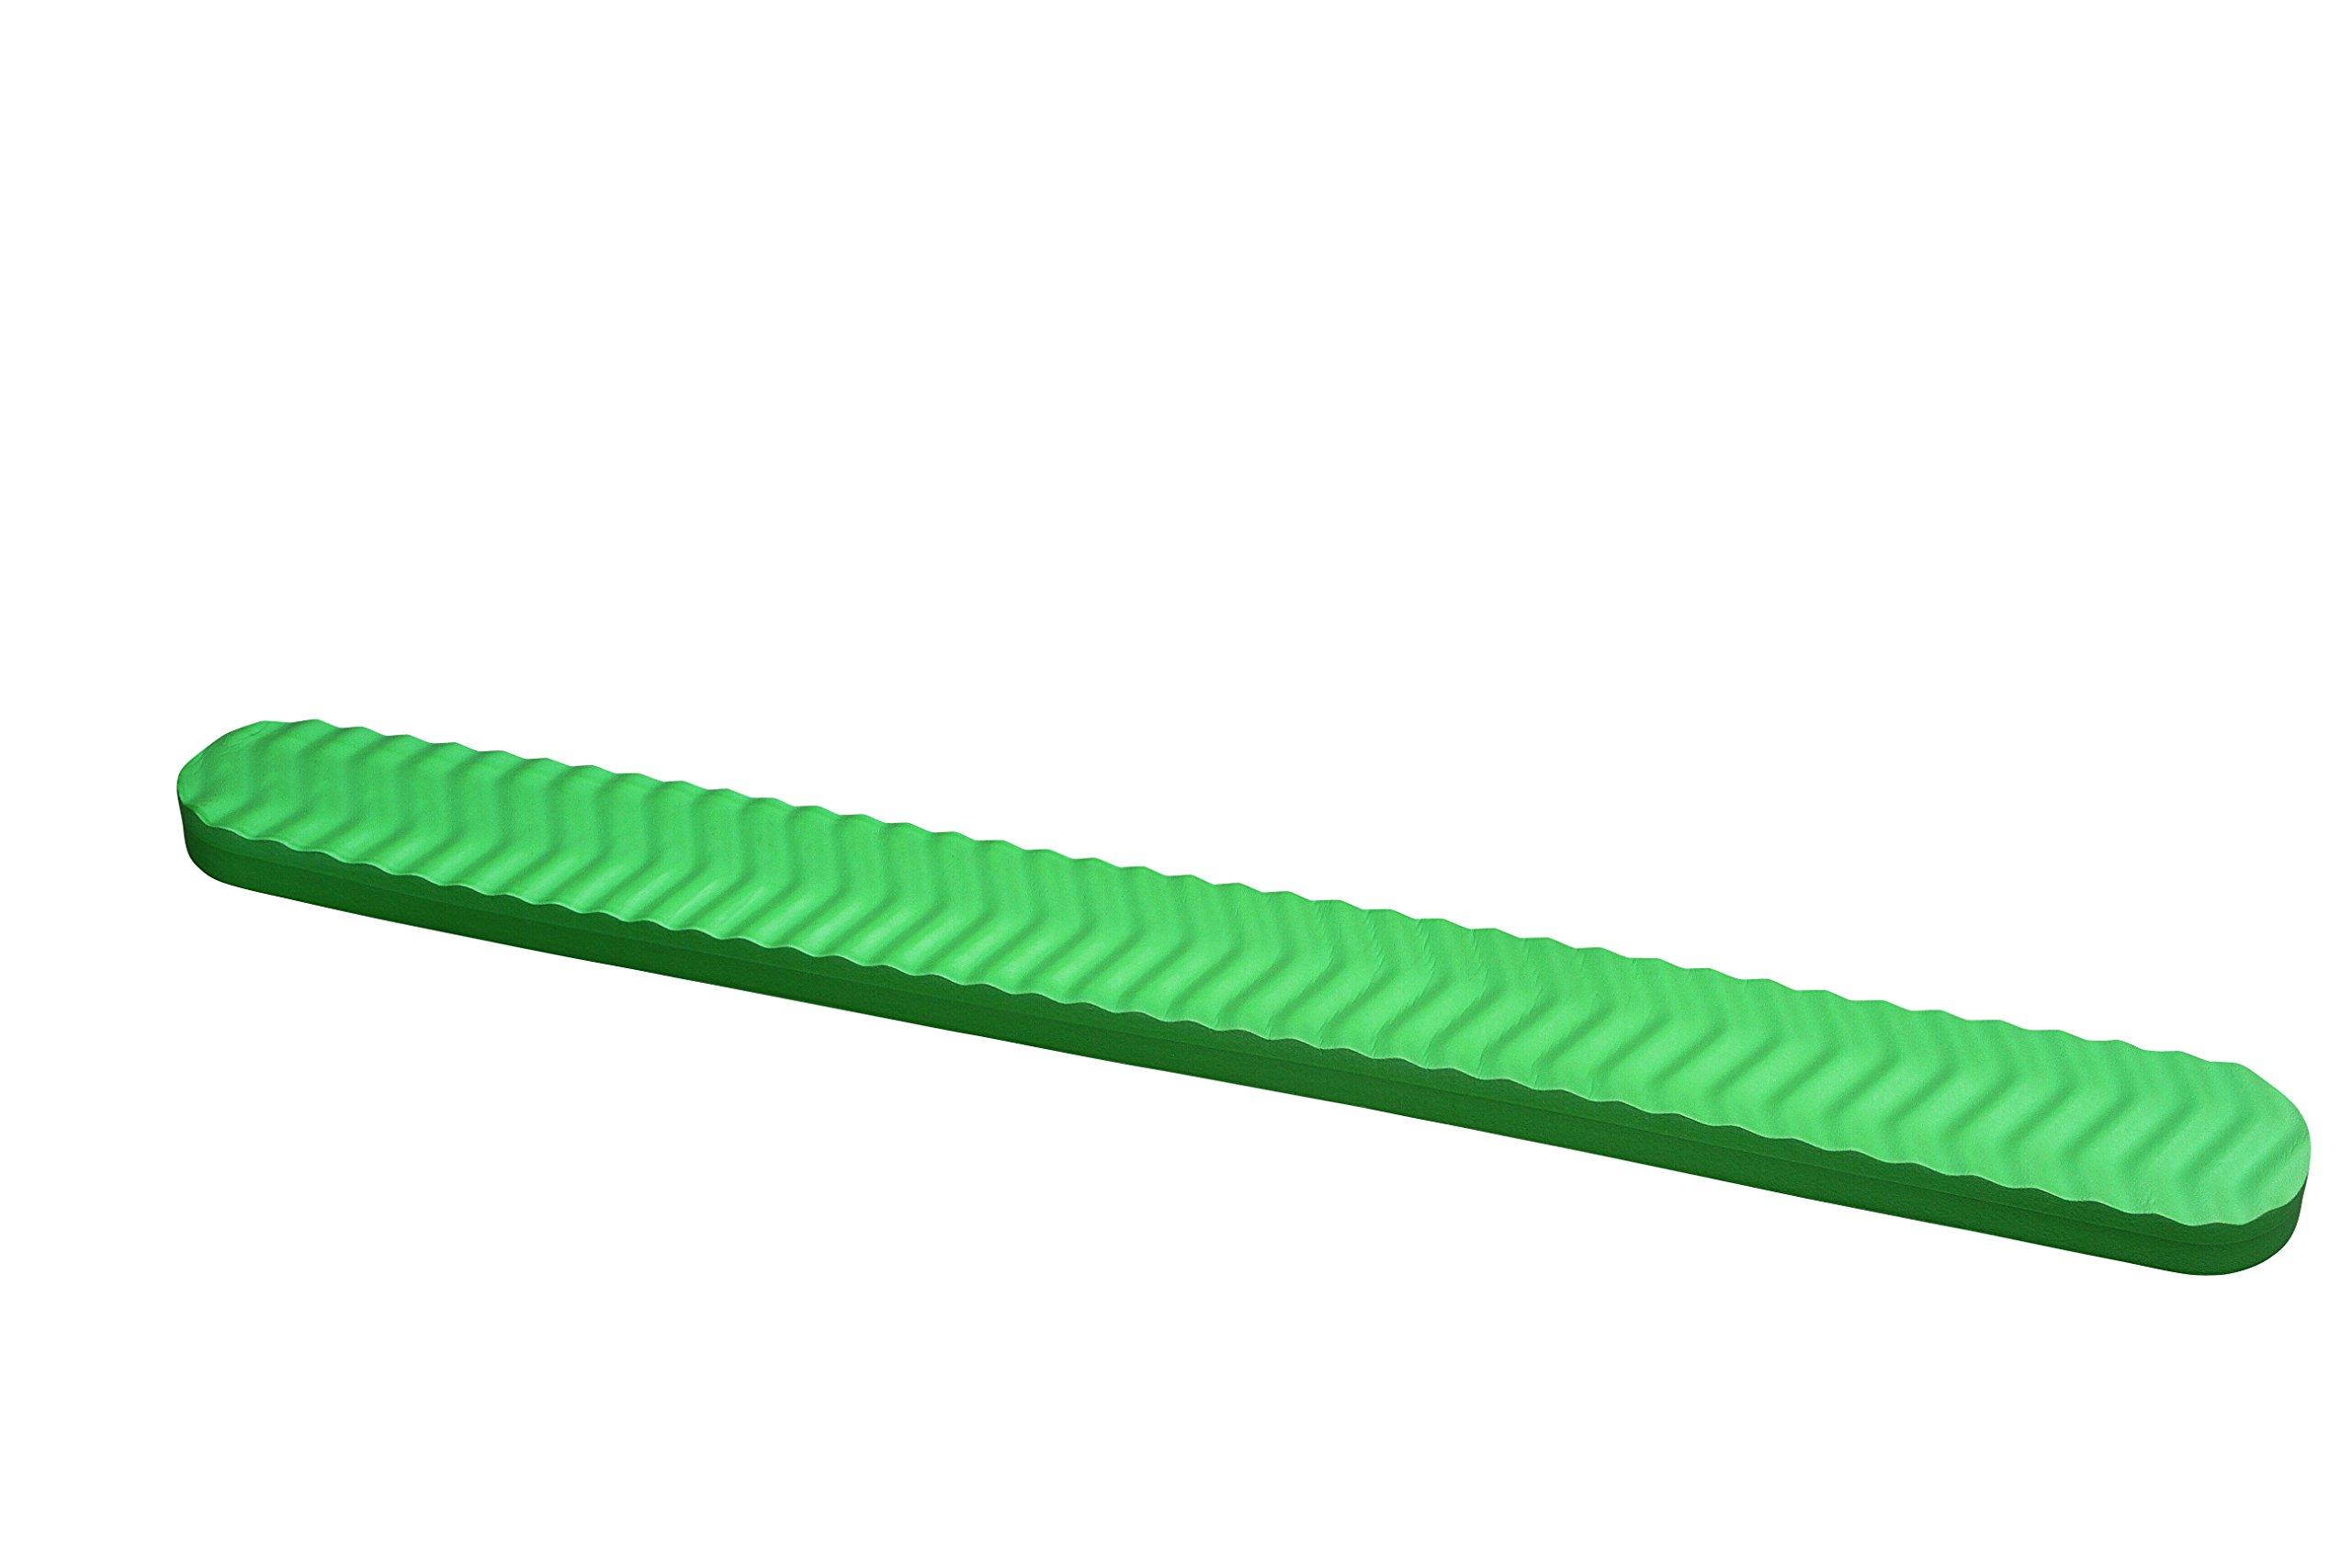 Drift and Escape NT6002-LM Luxury Pool Noodle, Lime Green, 43.7'' L x 4.3'' W by Drift and Escape